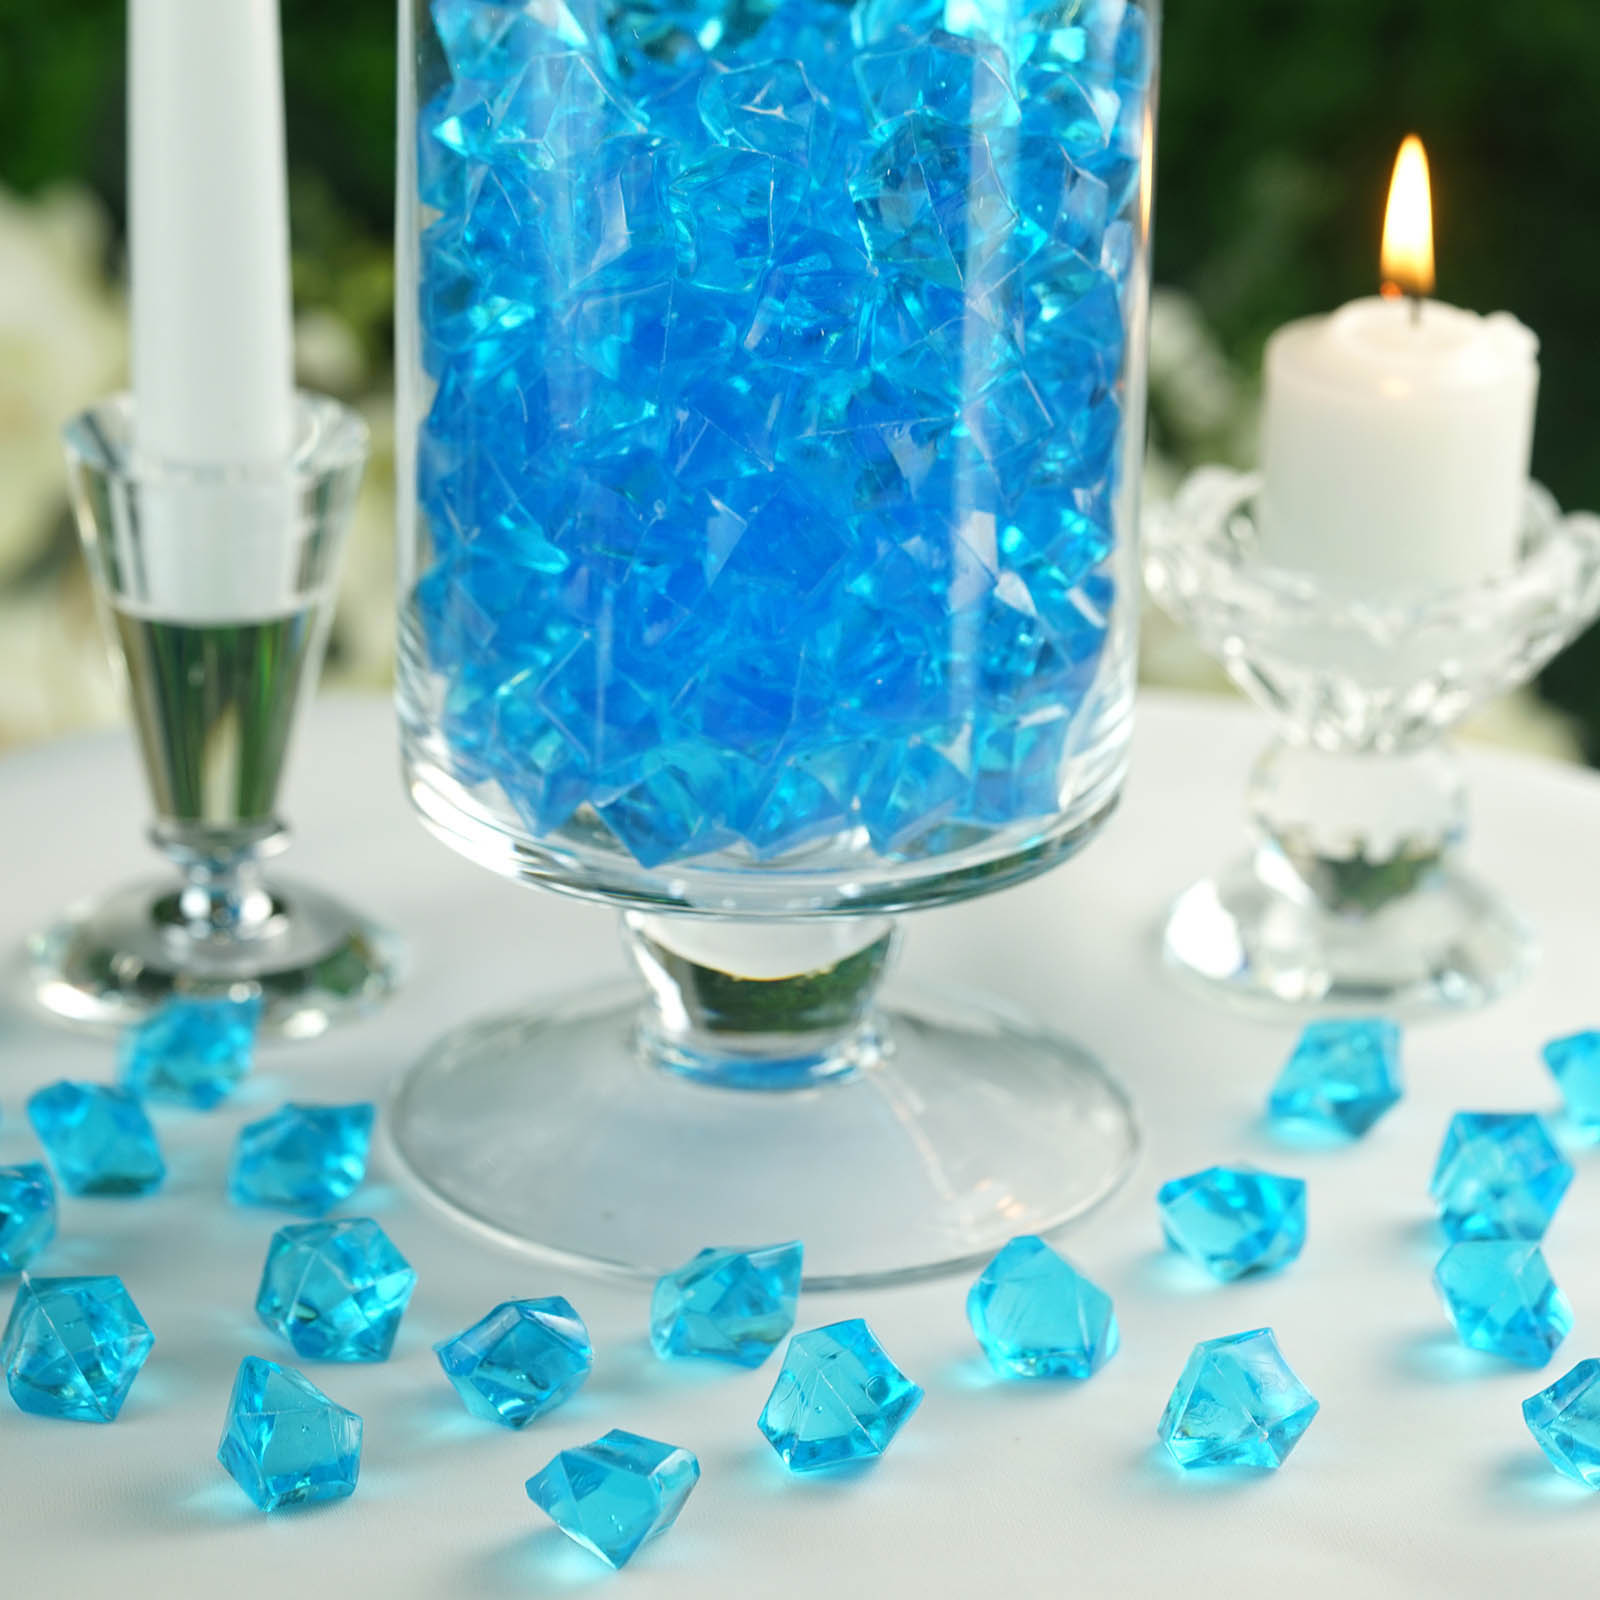 300-Acrylic-Ice-CRYSTAL-LIKE-Pieces-Wedding-Centerpieces-Decorations-Supplies thumbnail 63